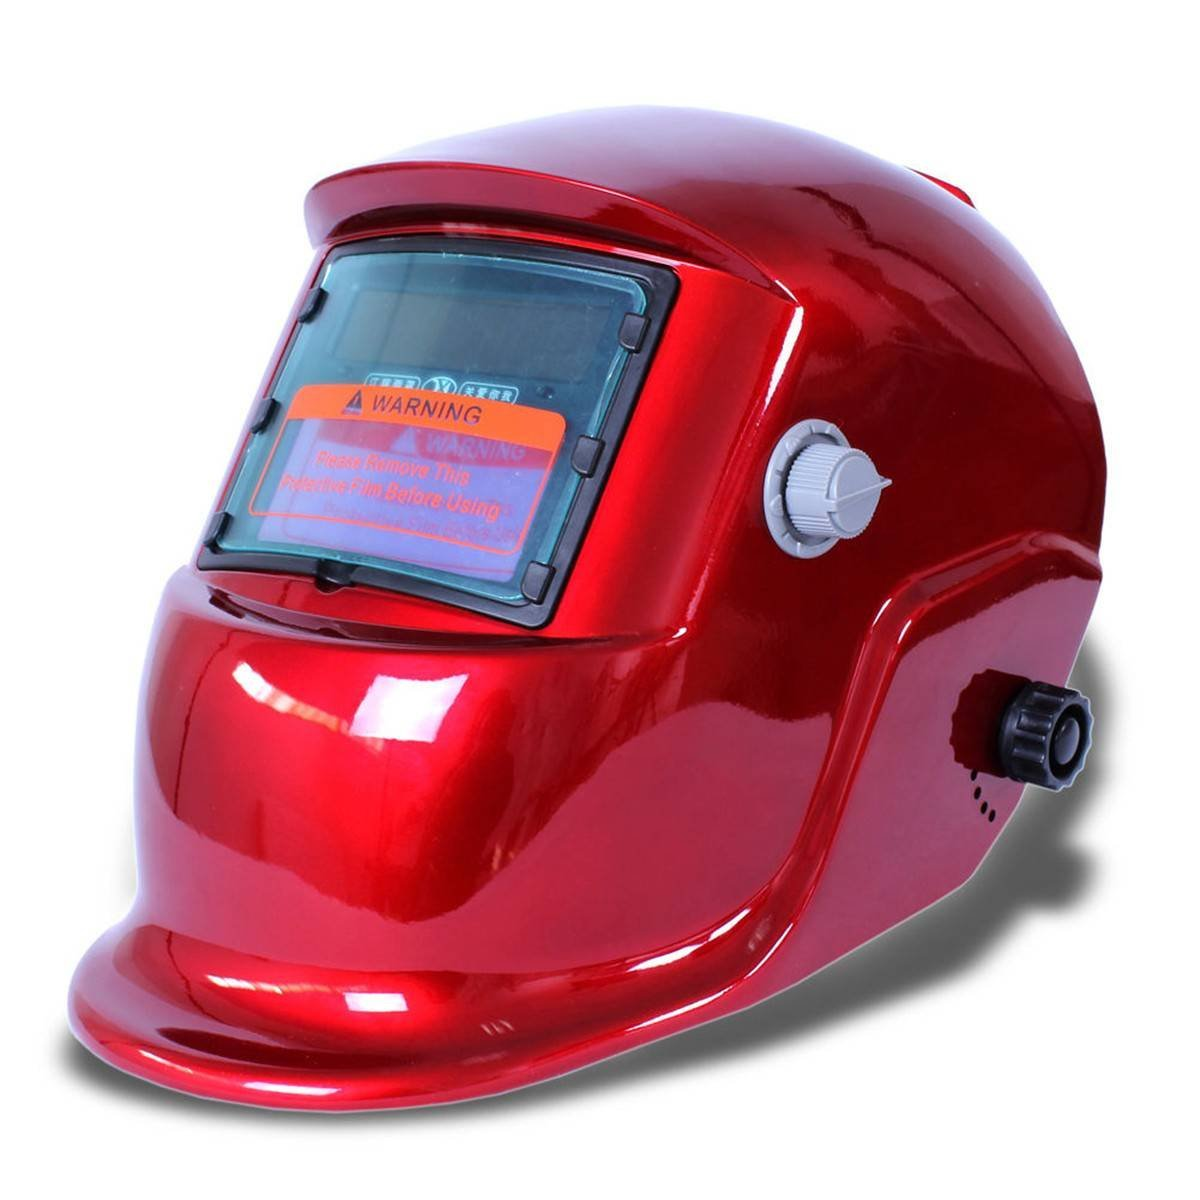 Welding mask helmet Solar energy automatic (solar use for refill) Facial protection accessories red